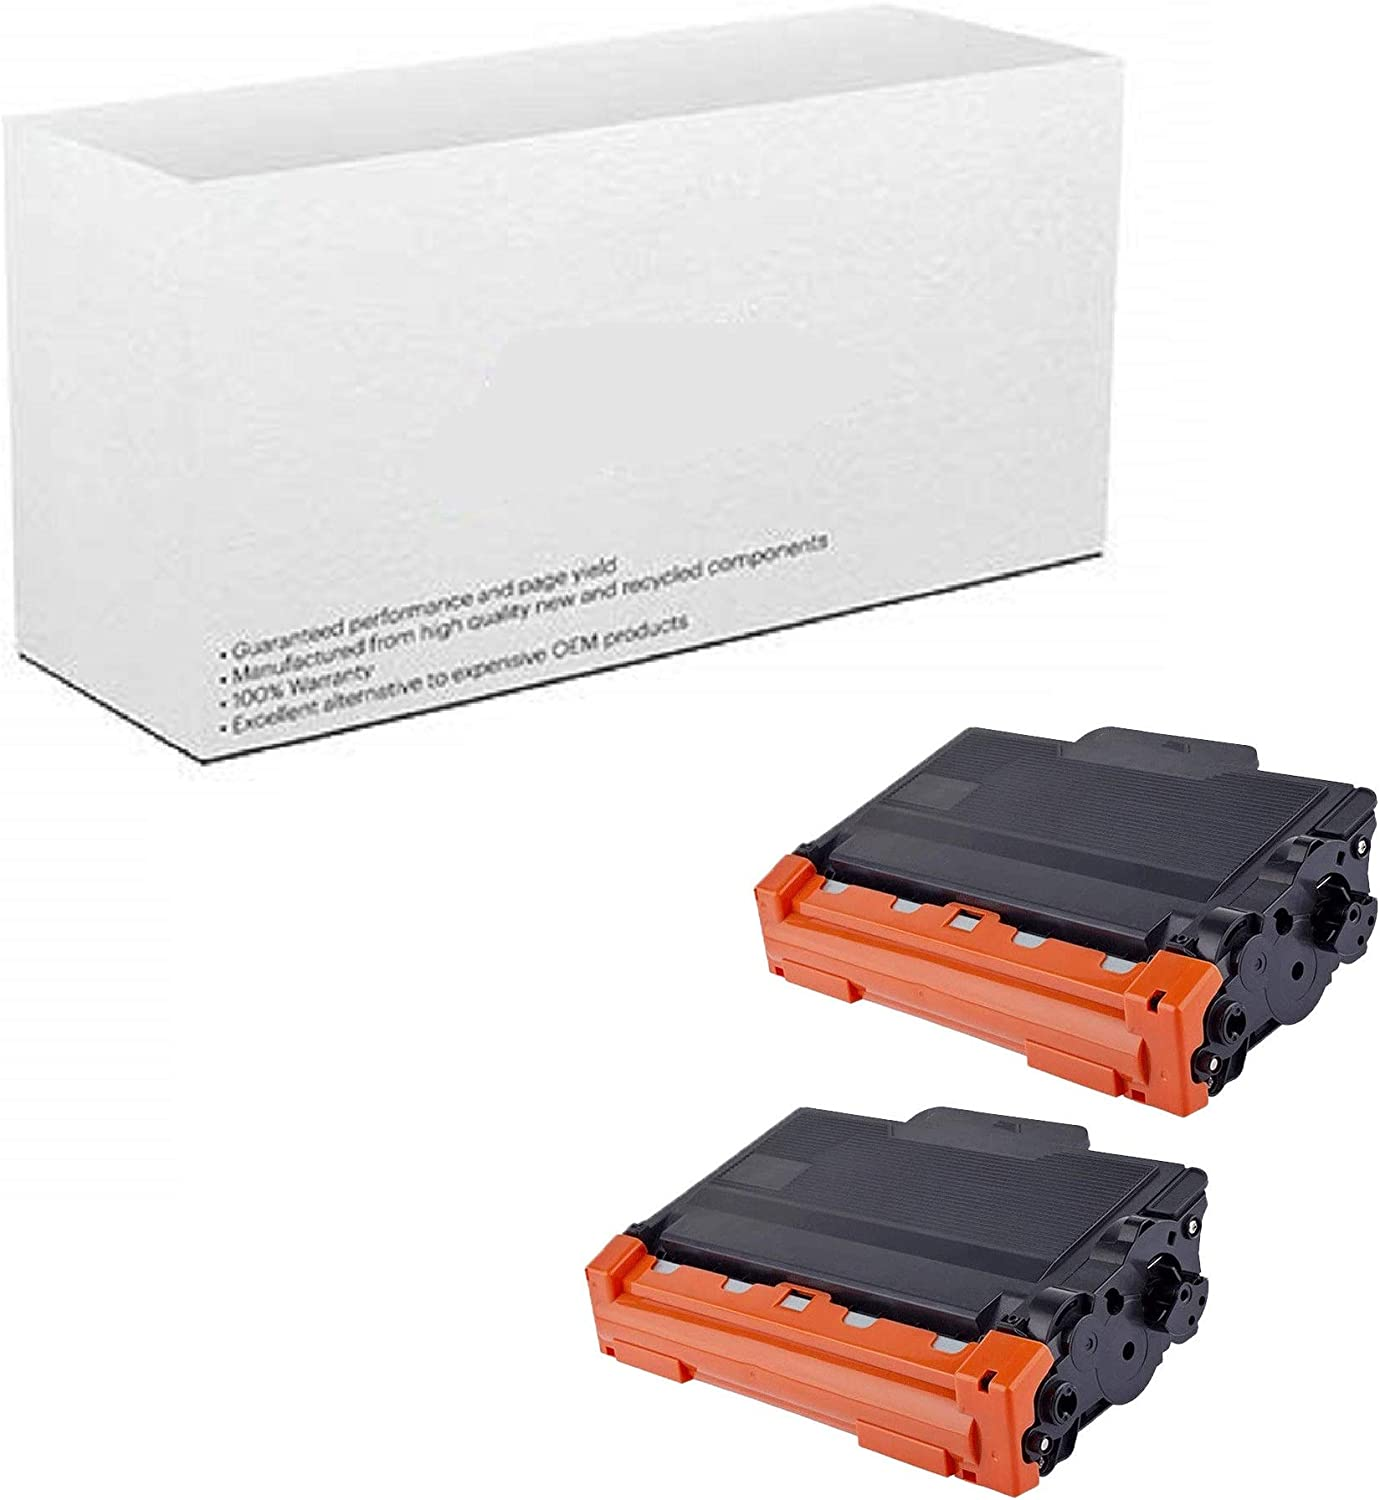 Black AM-Ink 2-Pack Compatible TN750 TN-750 TN720 TN-720 Toner Cartridge Replacement for Brother 5470DW 8710DW 5450DN 8910DW 6180DW 5470DWT 8510DN 6180DWT 8155DN 8150DN 8110DW Printer